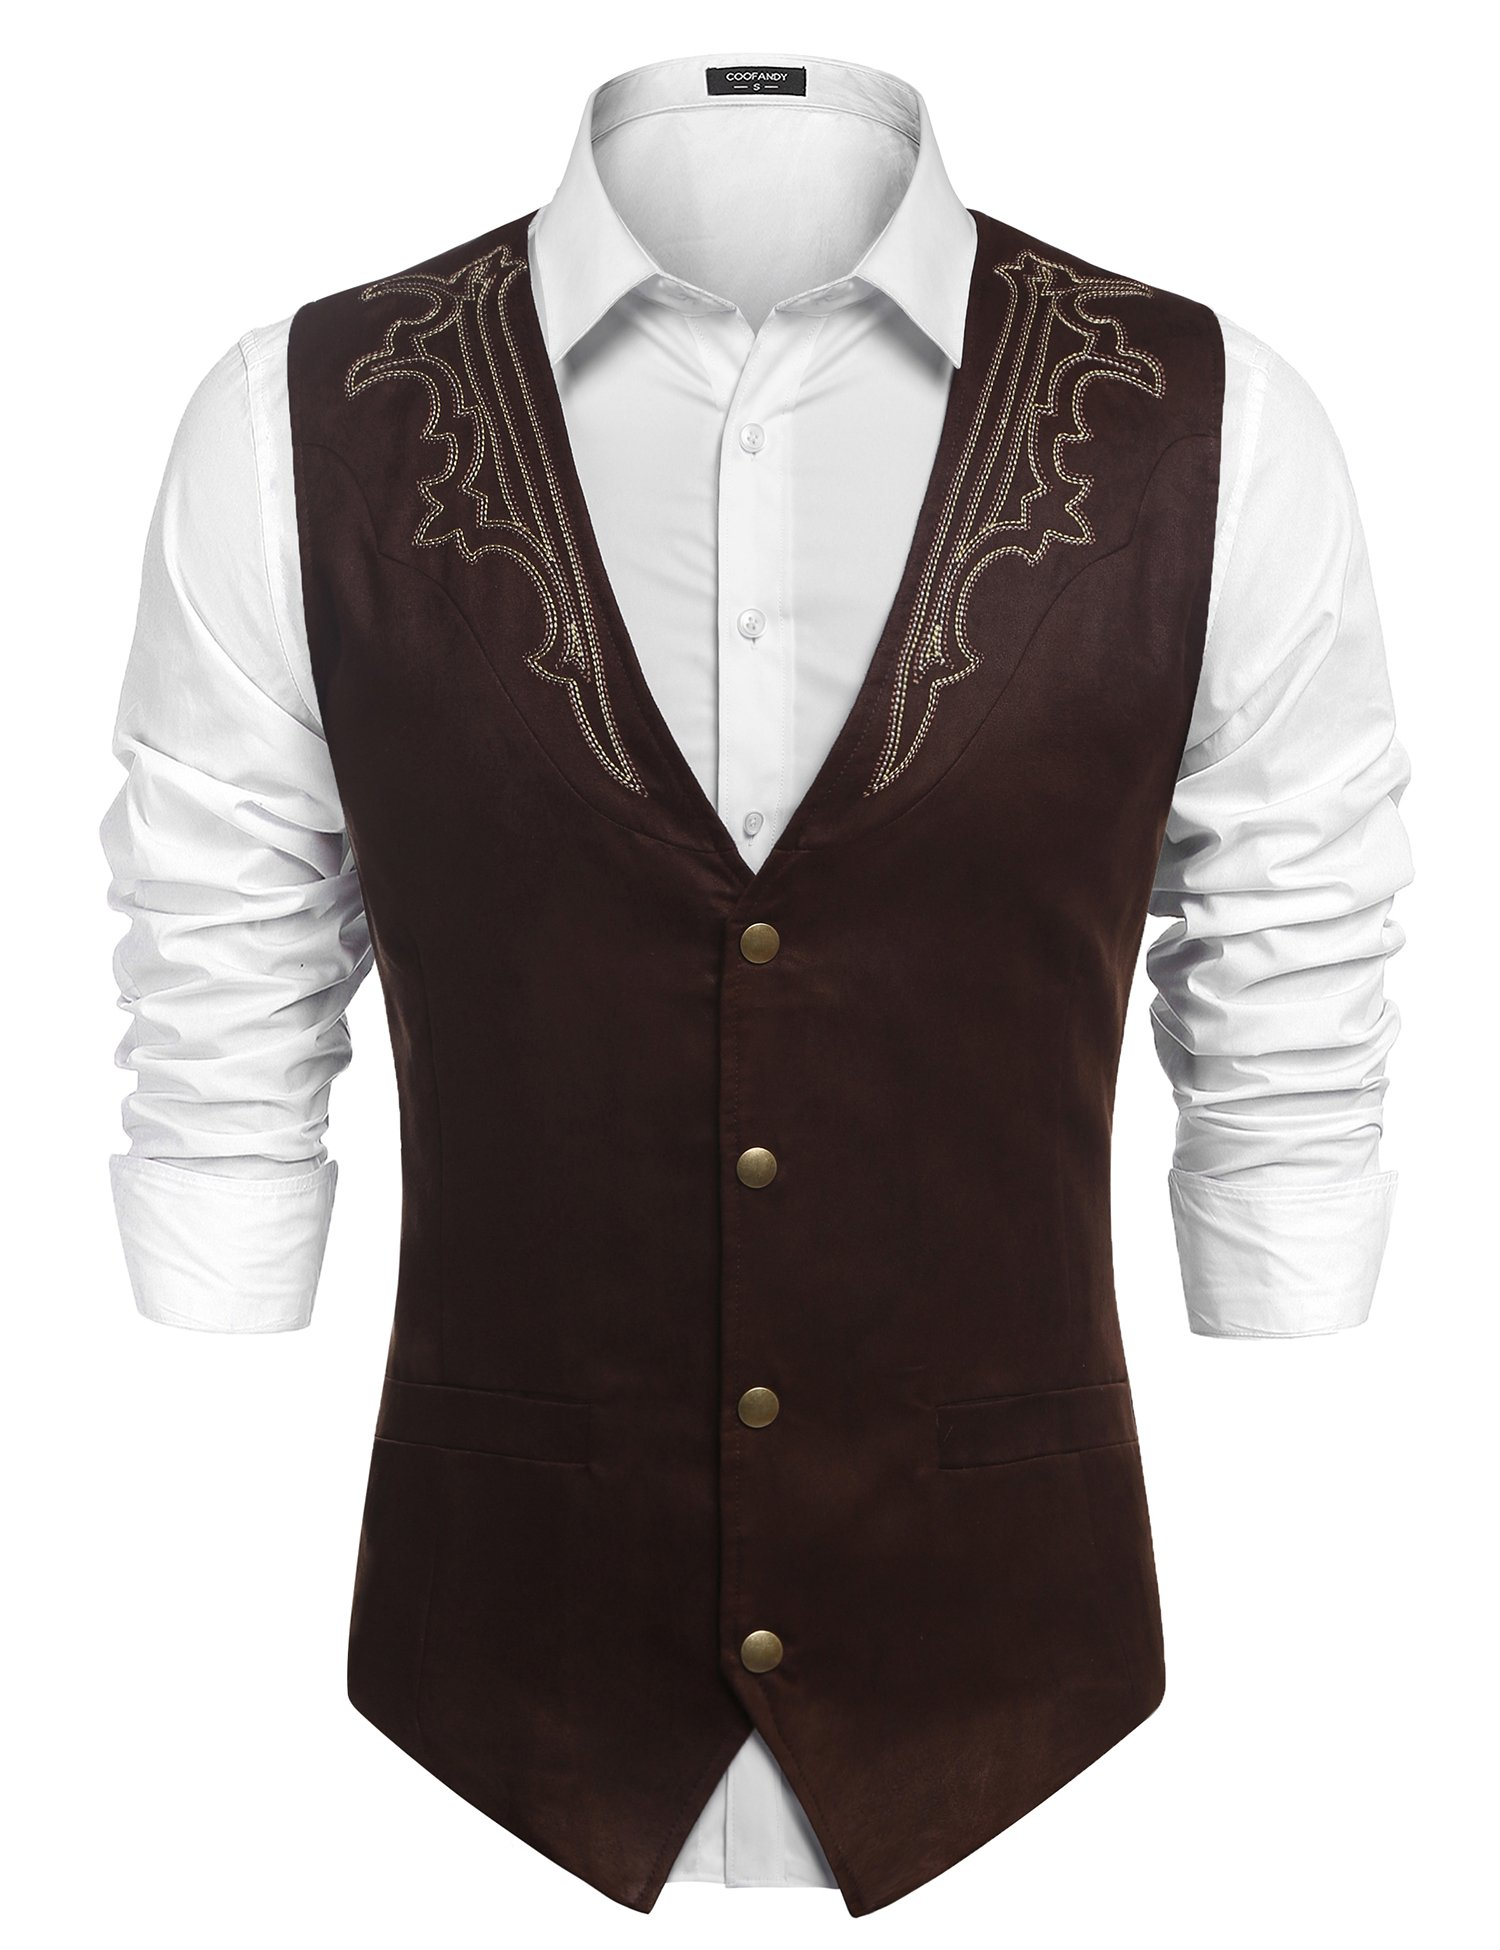 COOFANDY Men's Casual Suede Leather Vest Single-Breasted Vest Jacket by COOFANDY